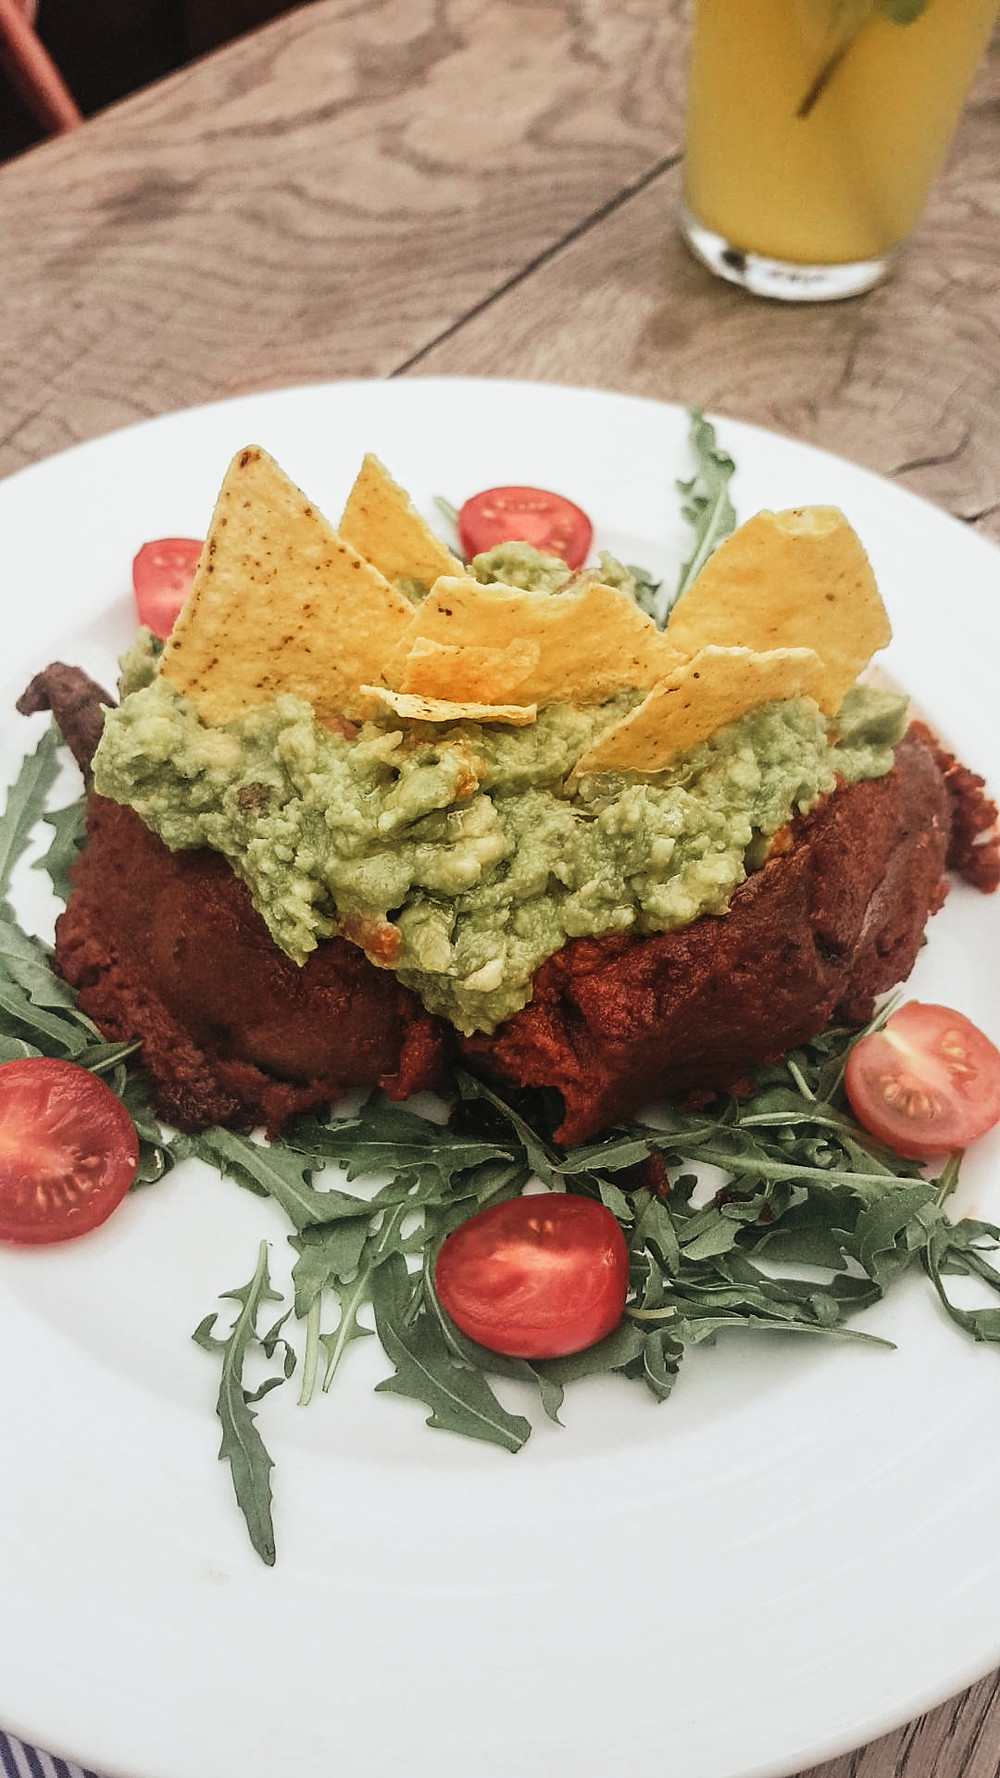 Vegan sweet potato with guacamole